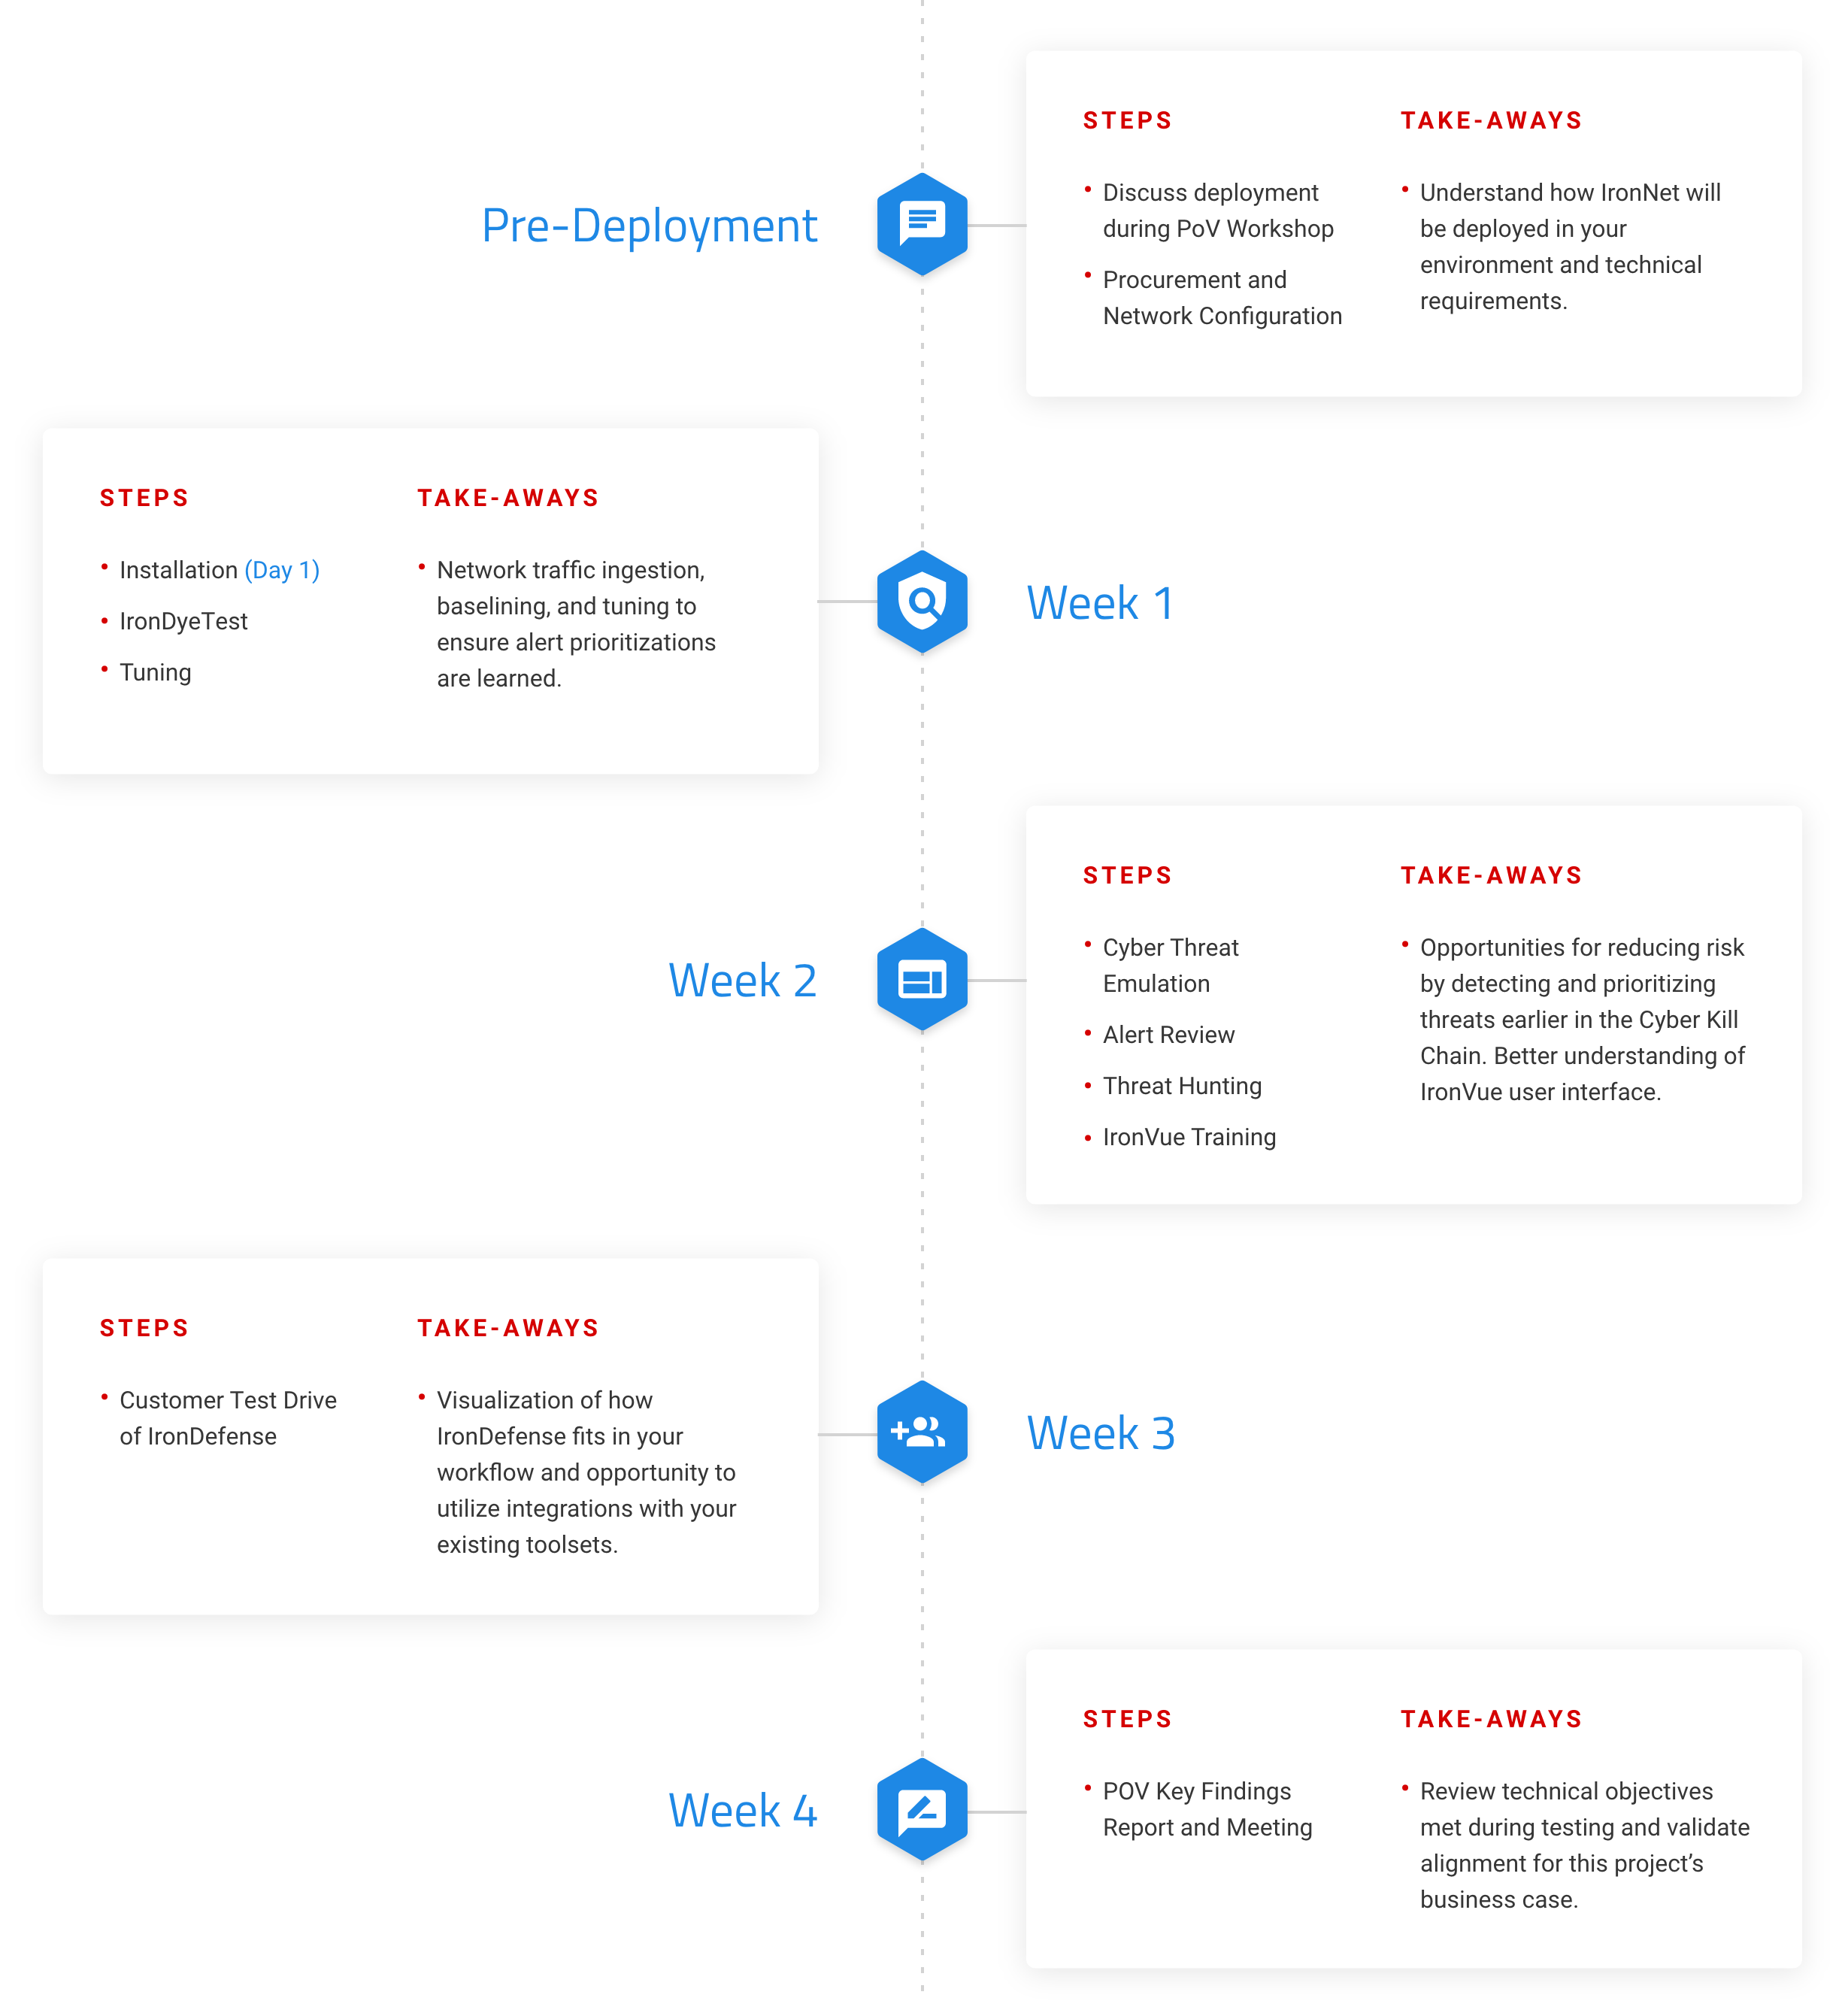 IronNet-POV-Landing-Page-Timeline-Graphic@2x